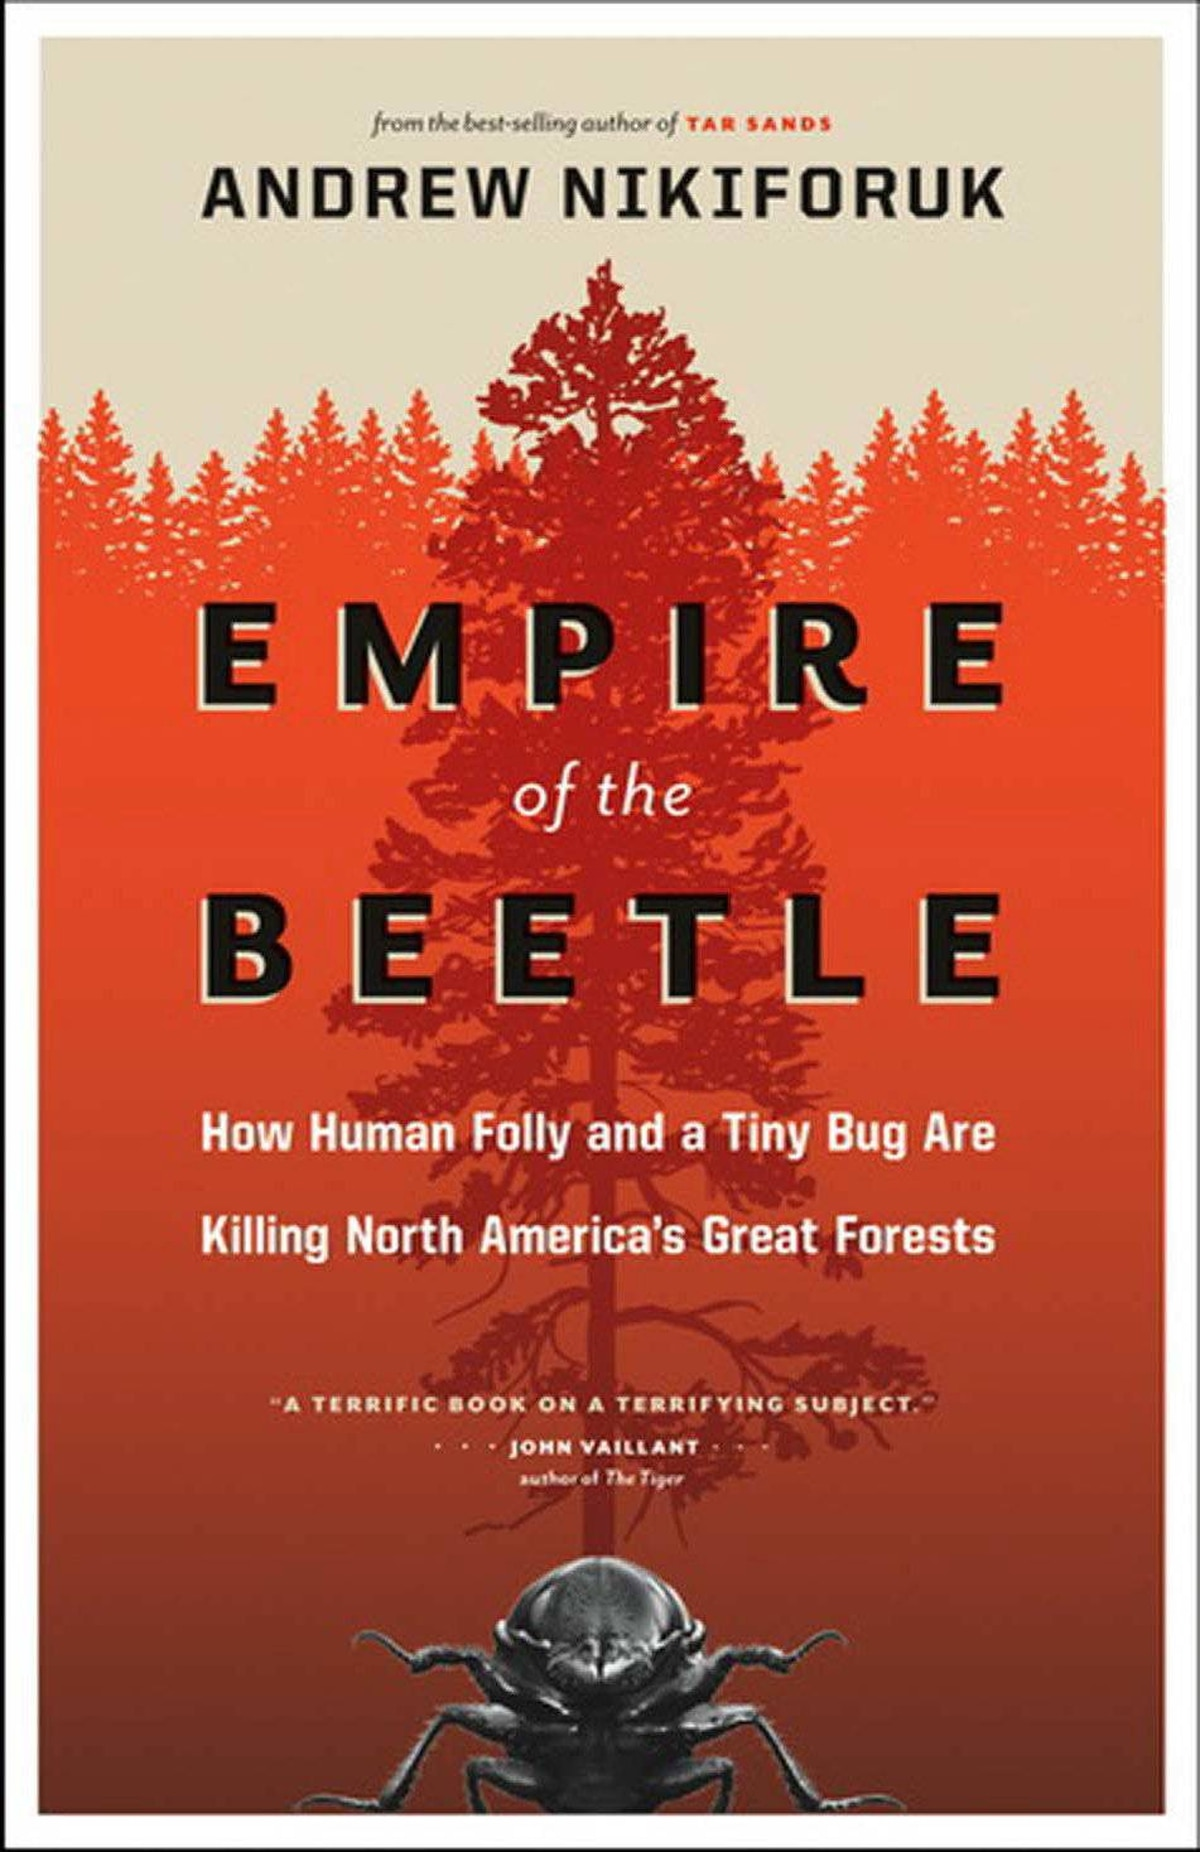 "EMPIRE OF THE BEETLE How Human Folly and a Tiny Bug are Killing North America's Great Forests By Andrew Nikiforuk (GreyStone) This important book is not just a primer on the recent rampages of the bark beetles that have killed more than 30 billion pine and spruce trees. It is not just a virtual gathering of the dozens of scientists and others who have grappled with the beetle onslaught. It is a principled reflection on ""the pathology of resource management."" – William Bryant Logan"